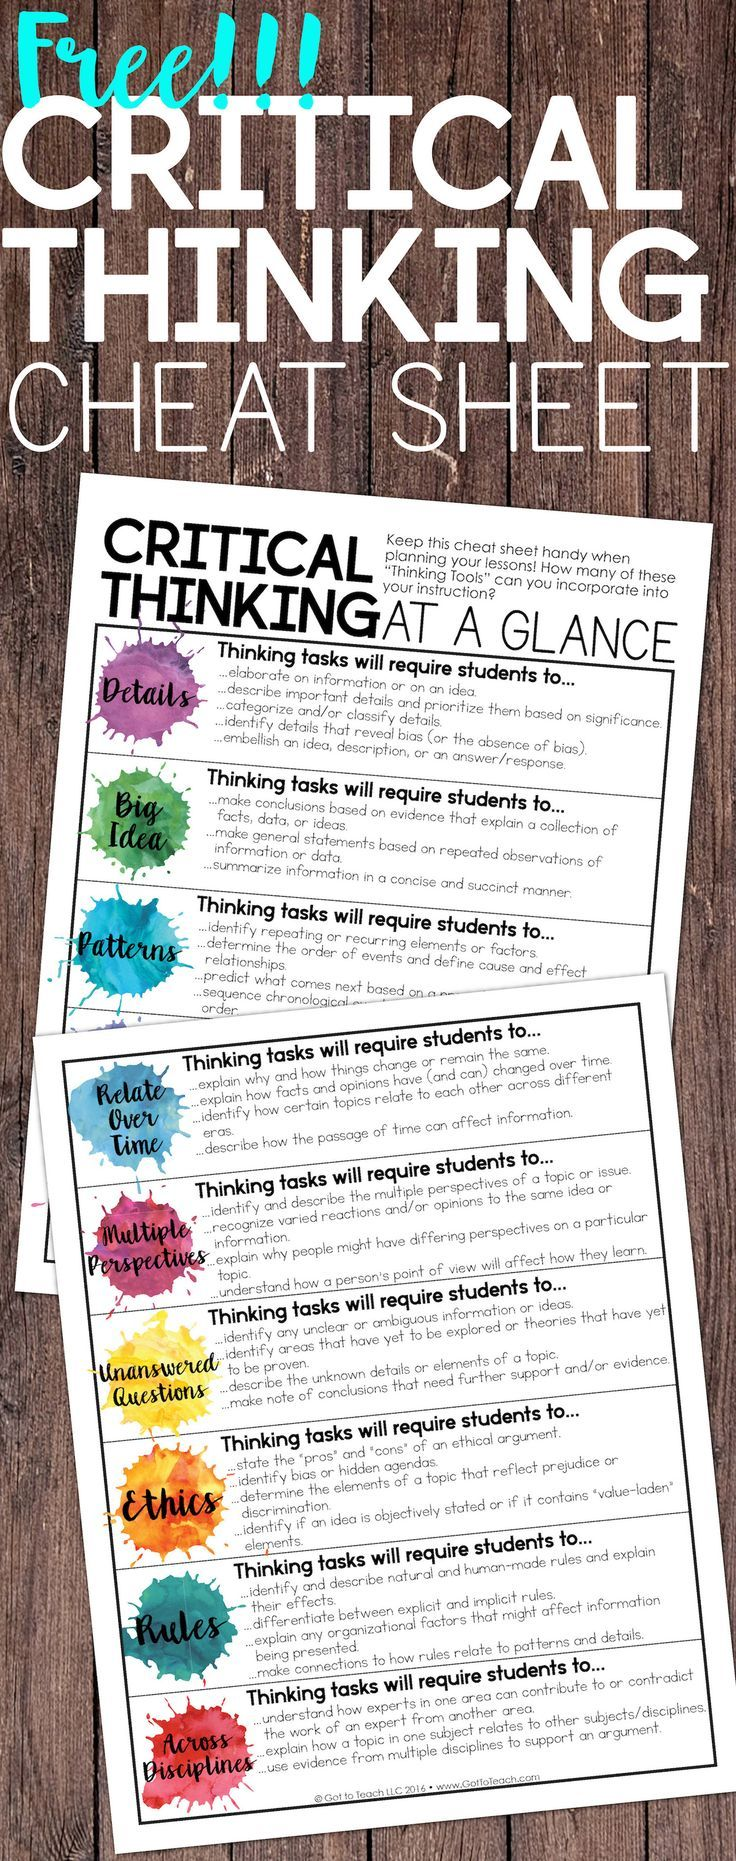 Critical Thinking Is Best Taught Outside the Classroom